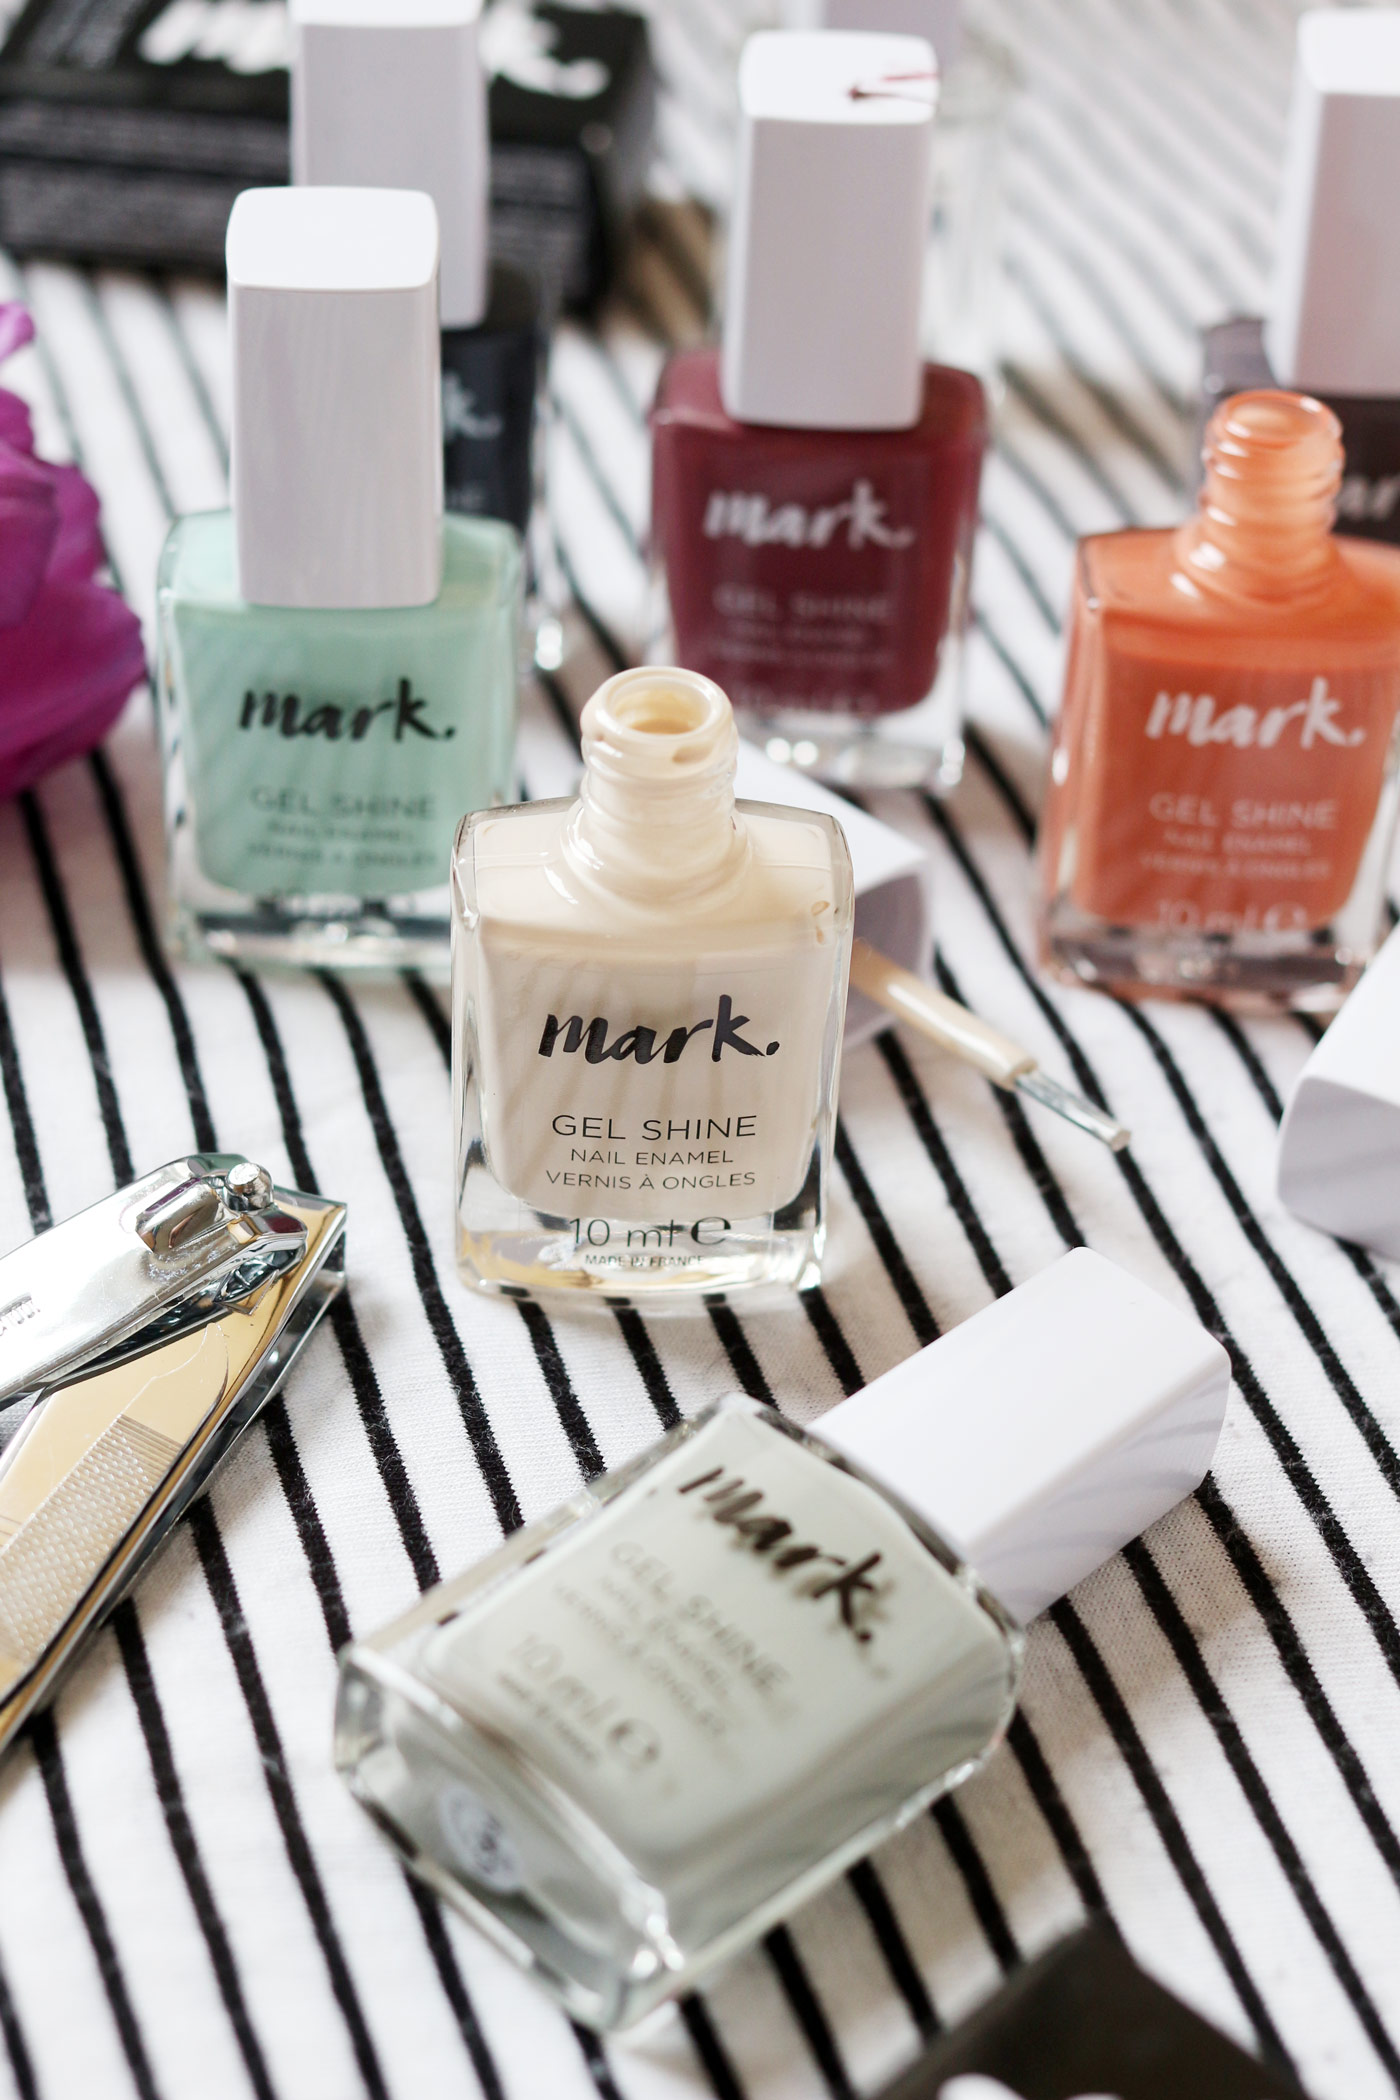 mark-nail-polish-avon-new-brand-nails-review-1